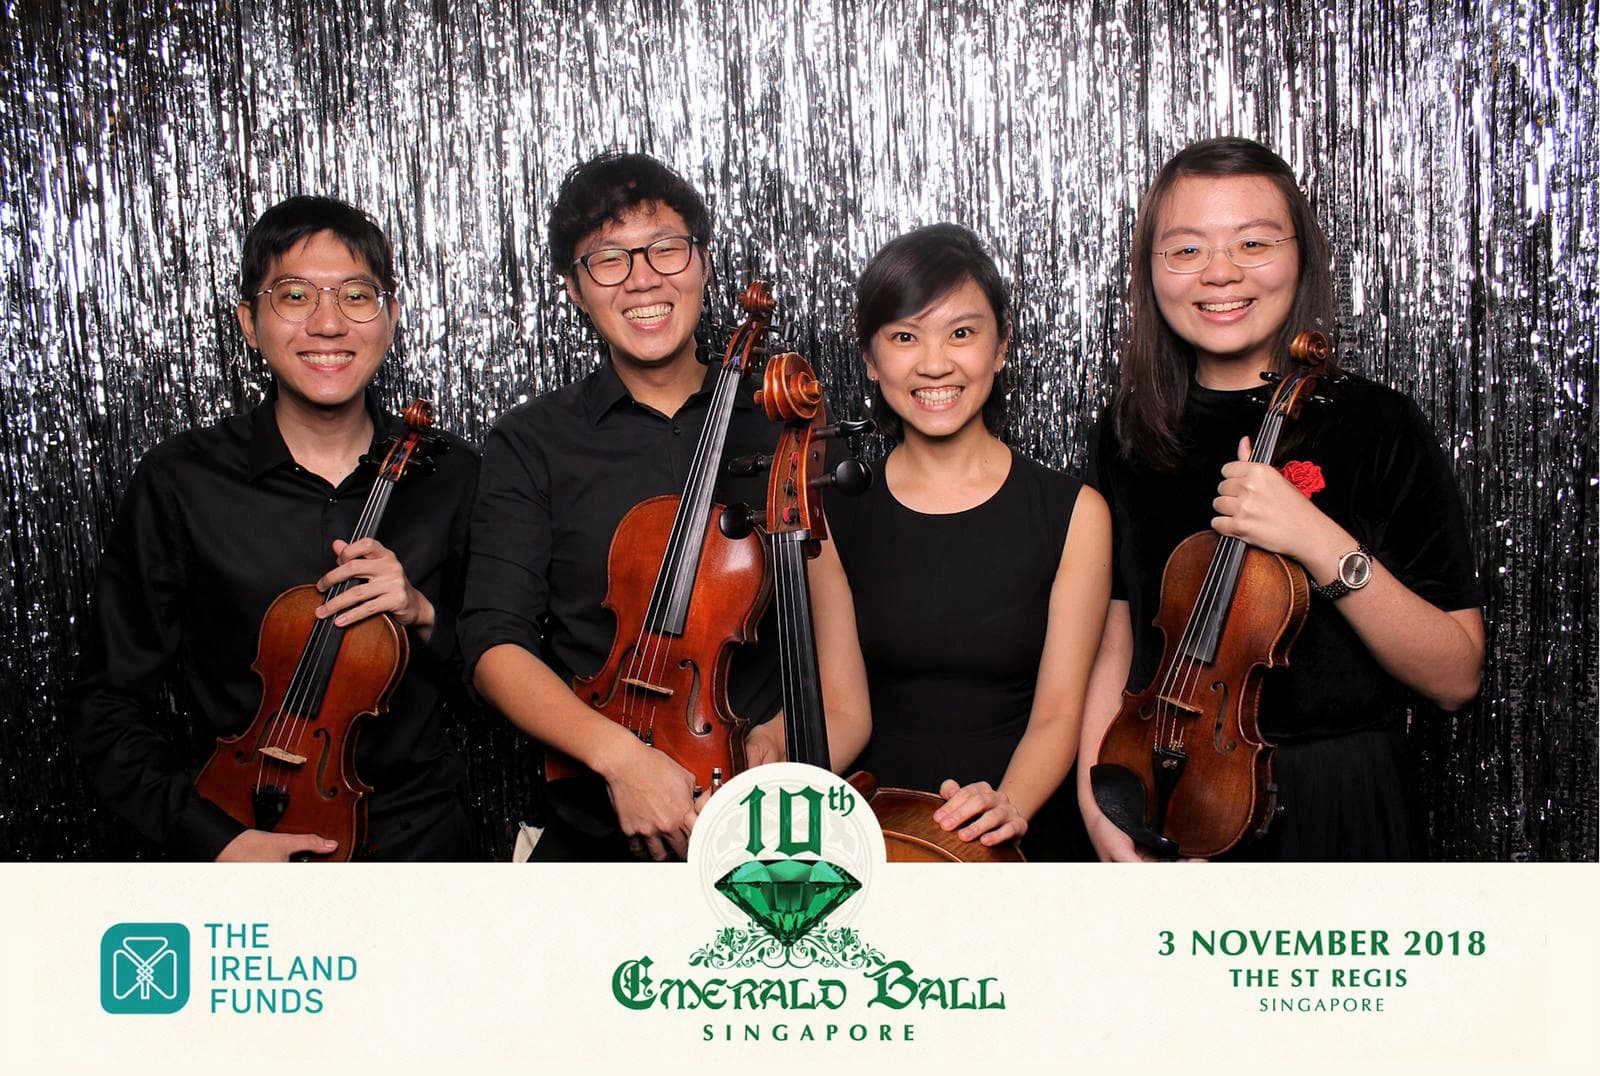 The Ireland Funds Emerald Ball 2018